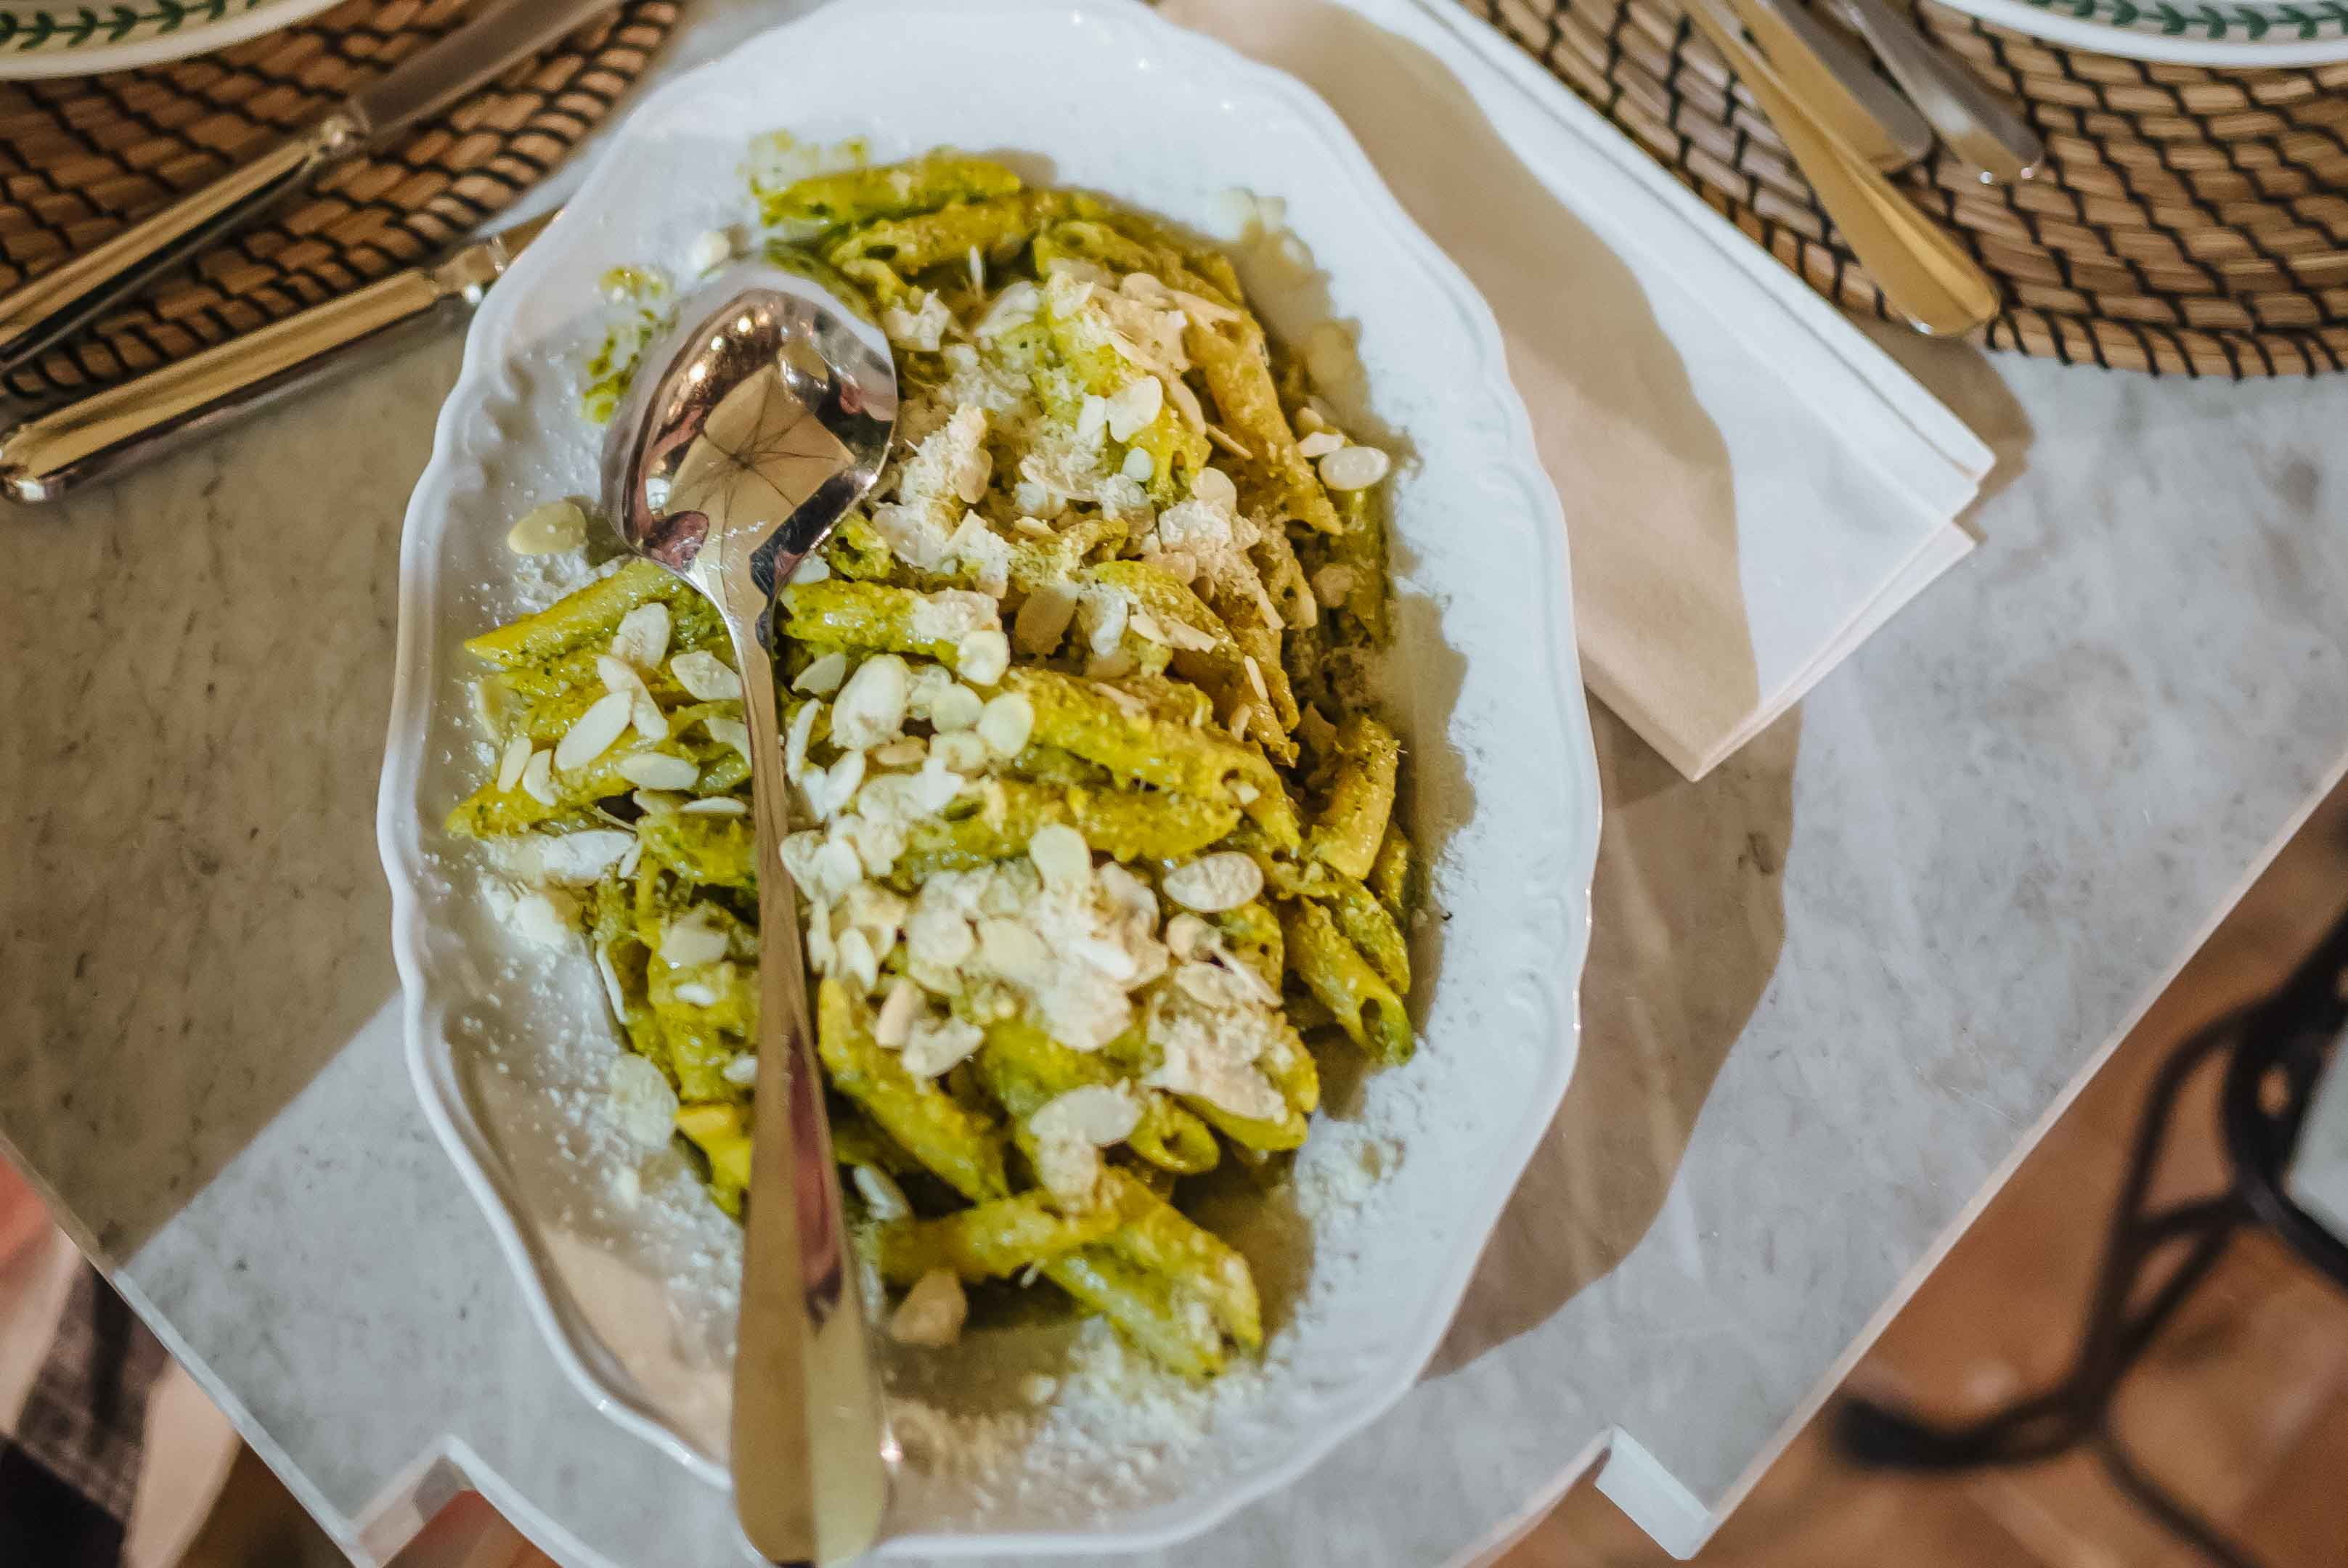 Make this traditional sicilian pasta recipe Pesto alla Trapanese with almonds from The TasteSF